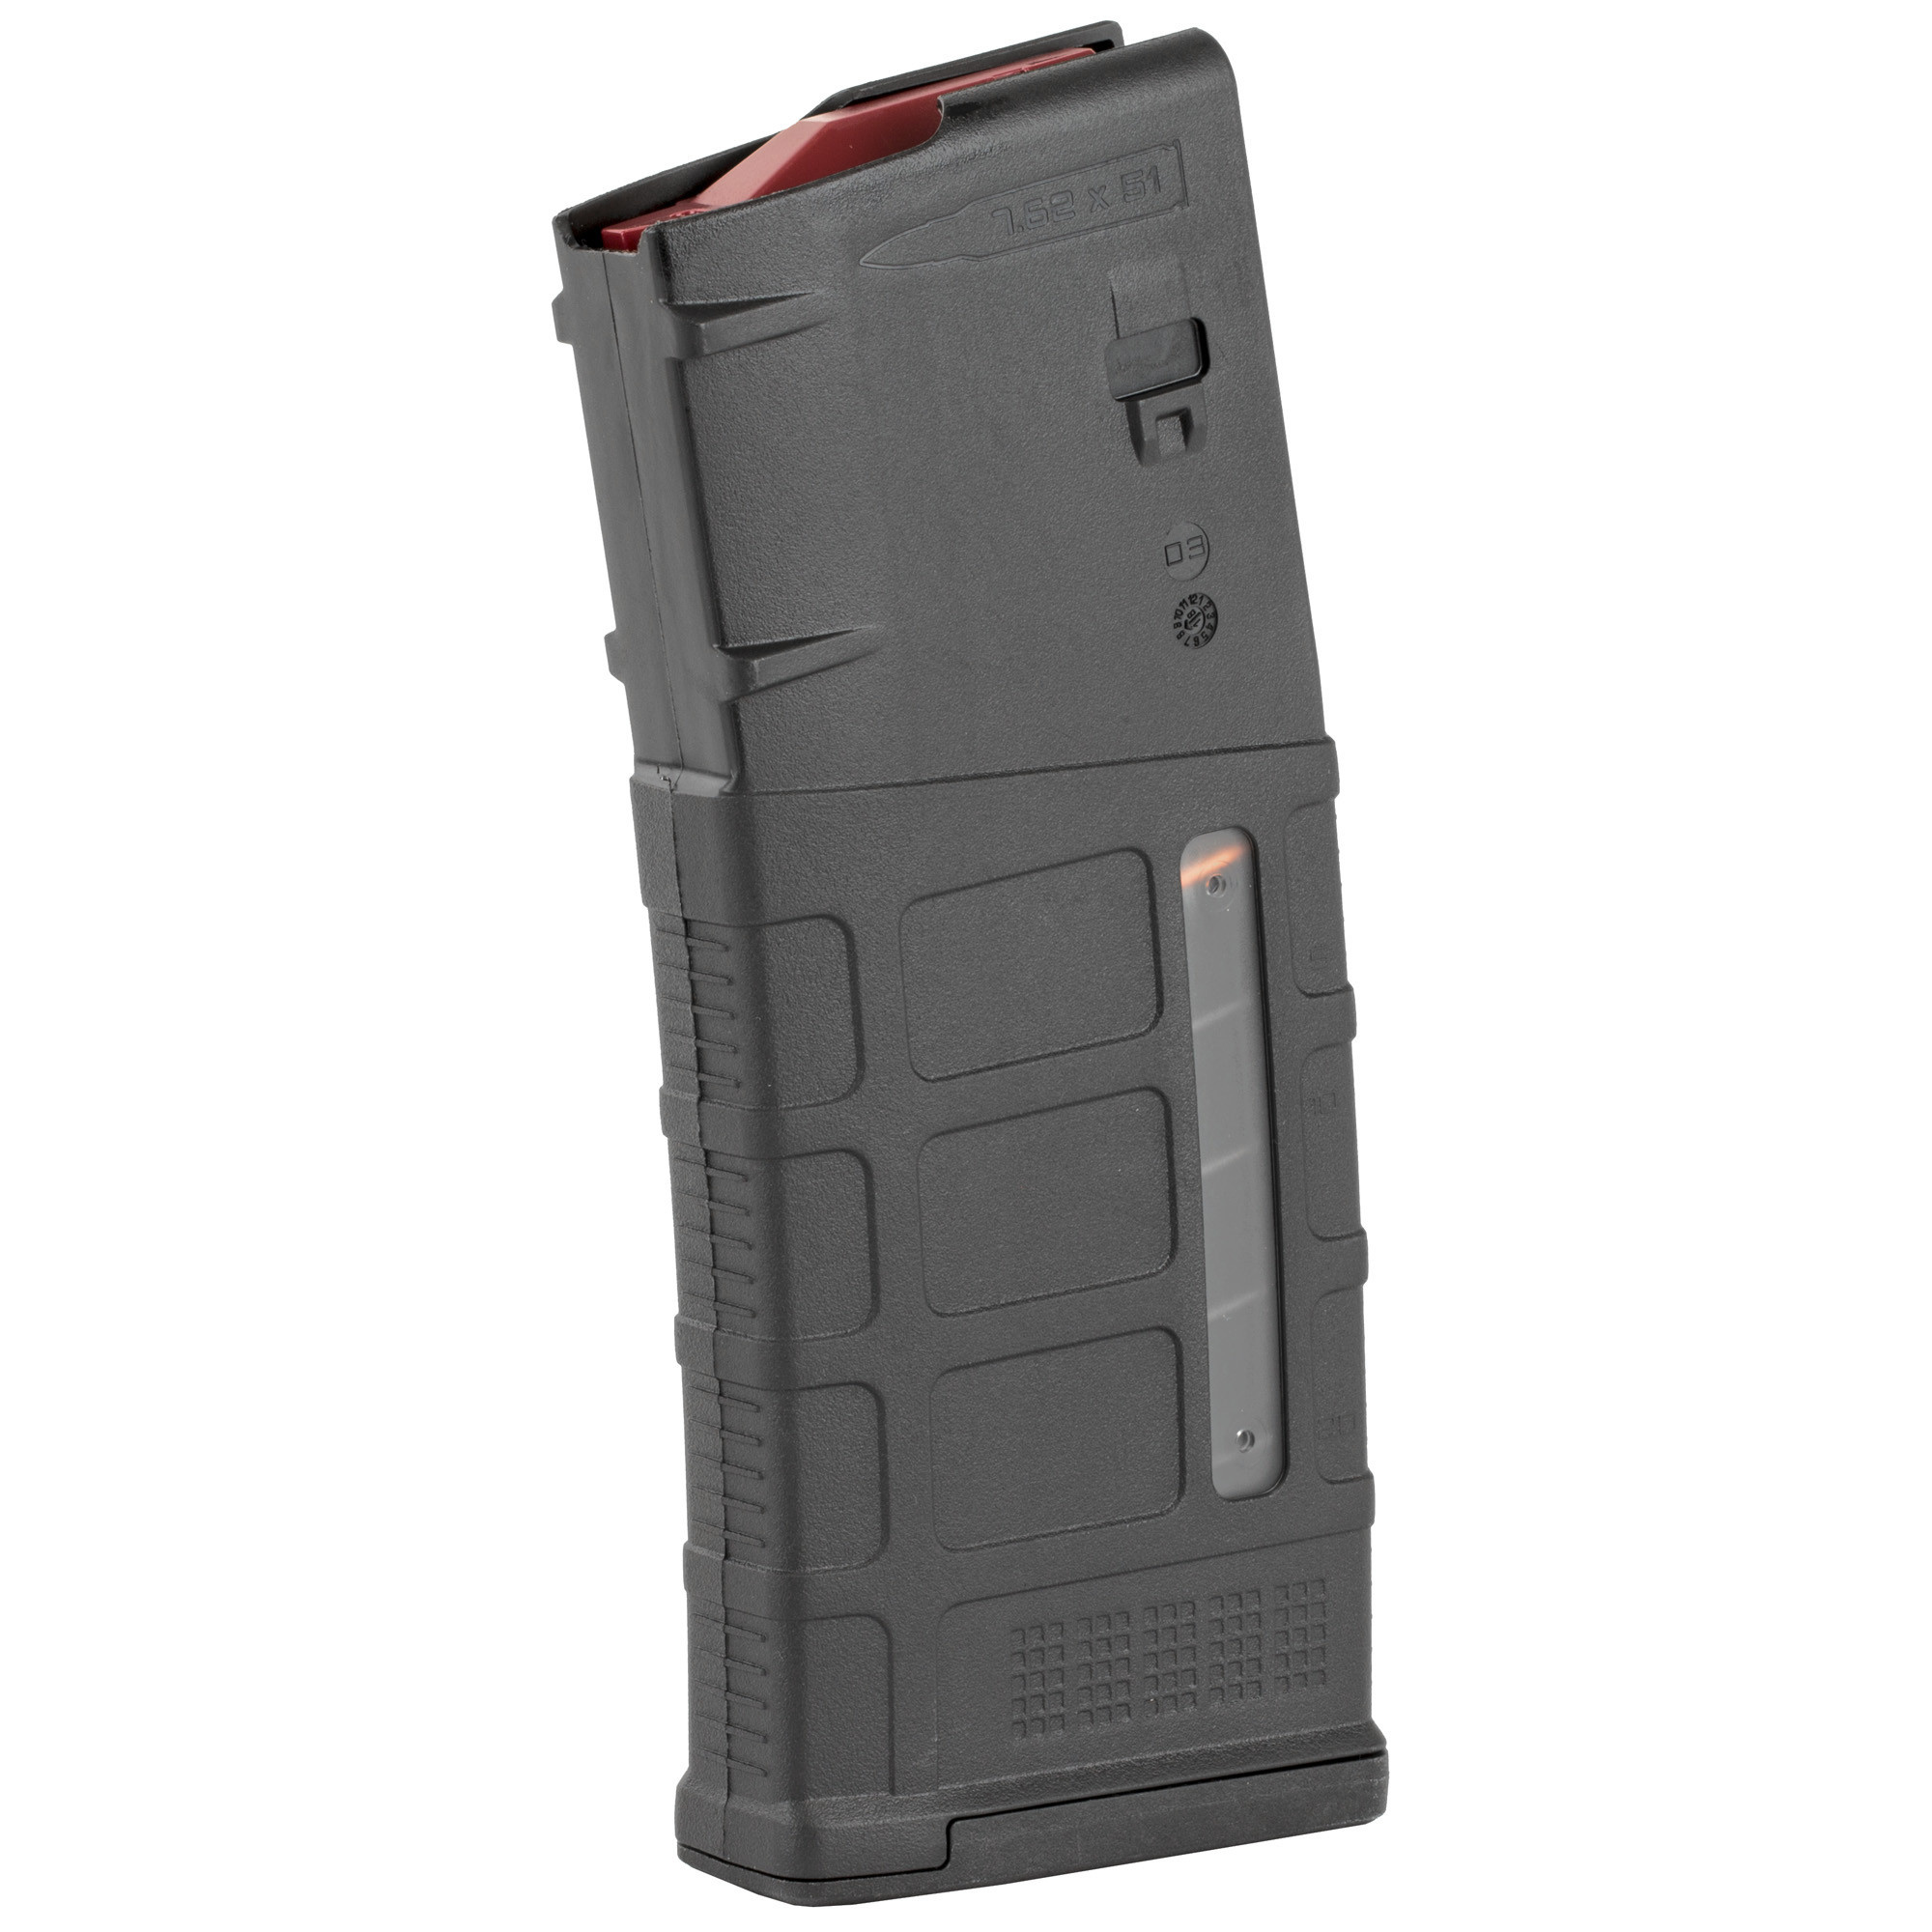 Magpul PMAG Gen 3 Windowed LR308/SR-25 M118 Magazine 7.62/.308 25 Rounds Polymer Black MAG577-BLK